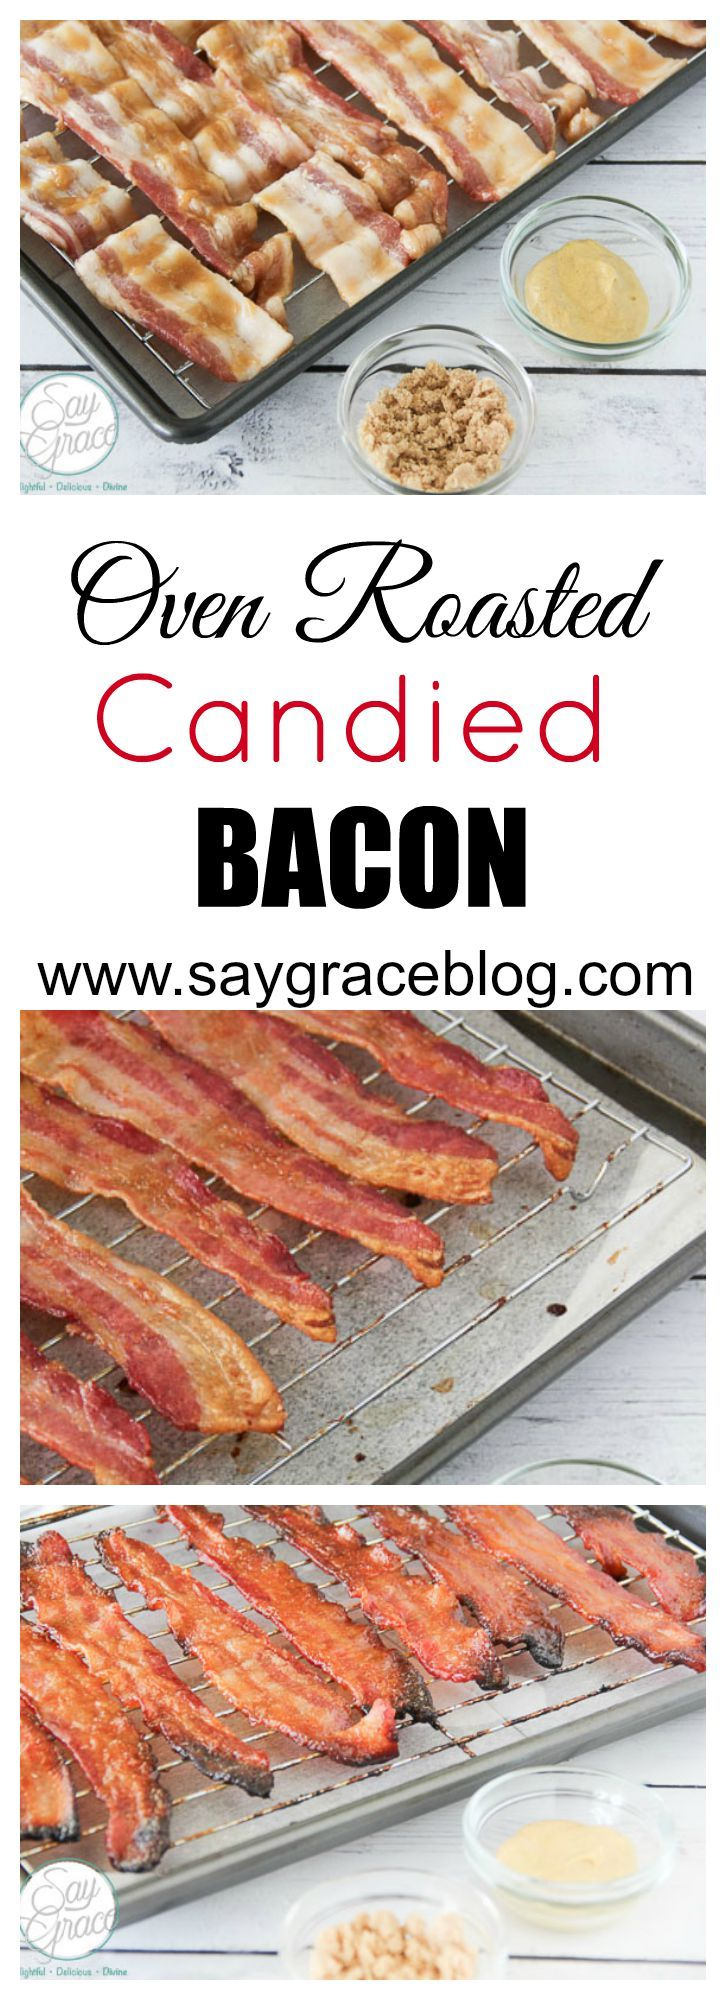 This thick cut bacon roasted in brown sugar will take your taste buds over the top with yummy goodness!